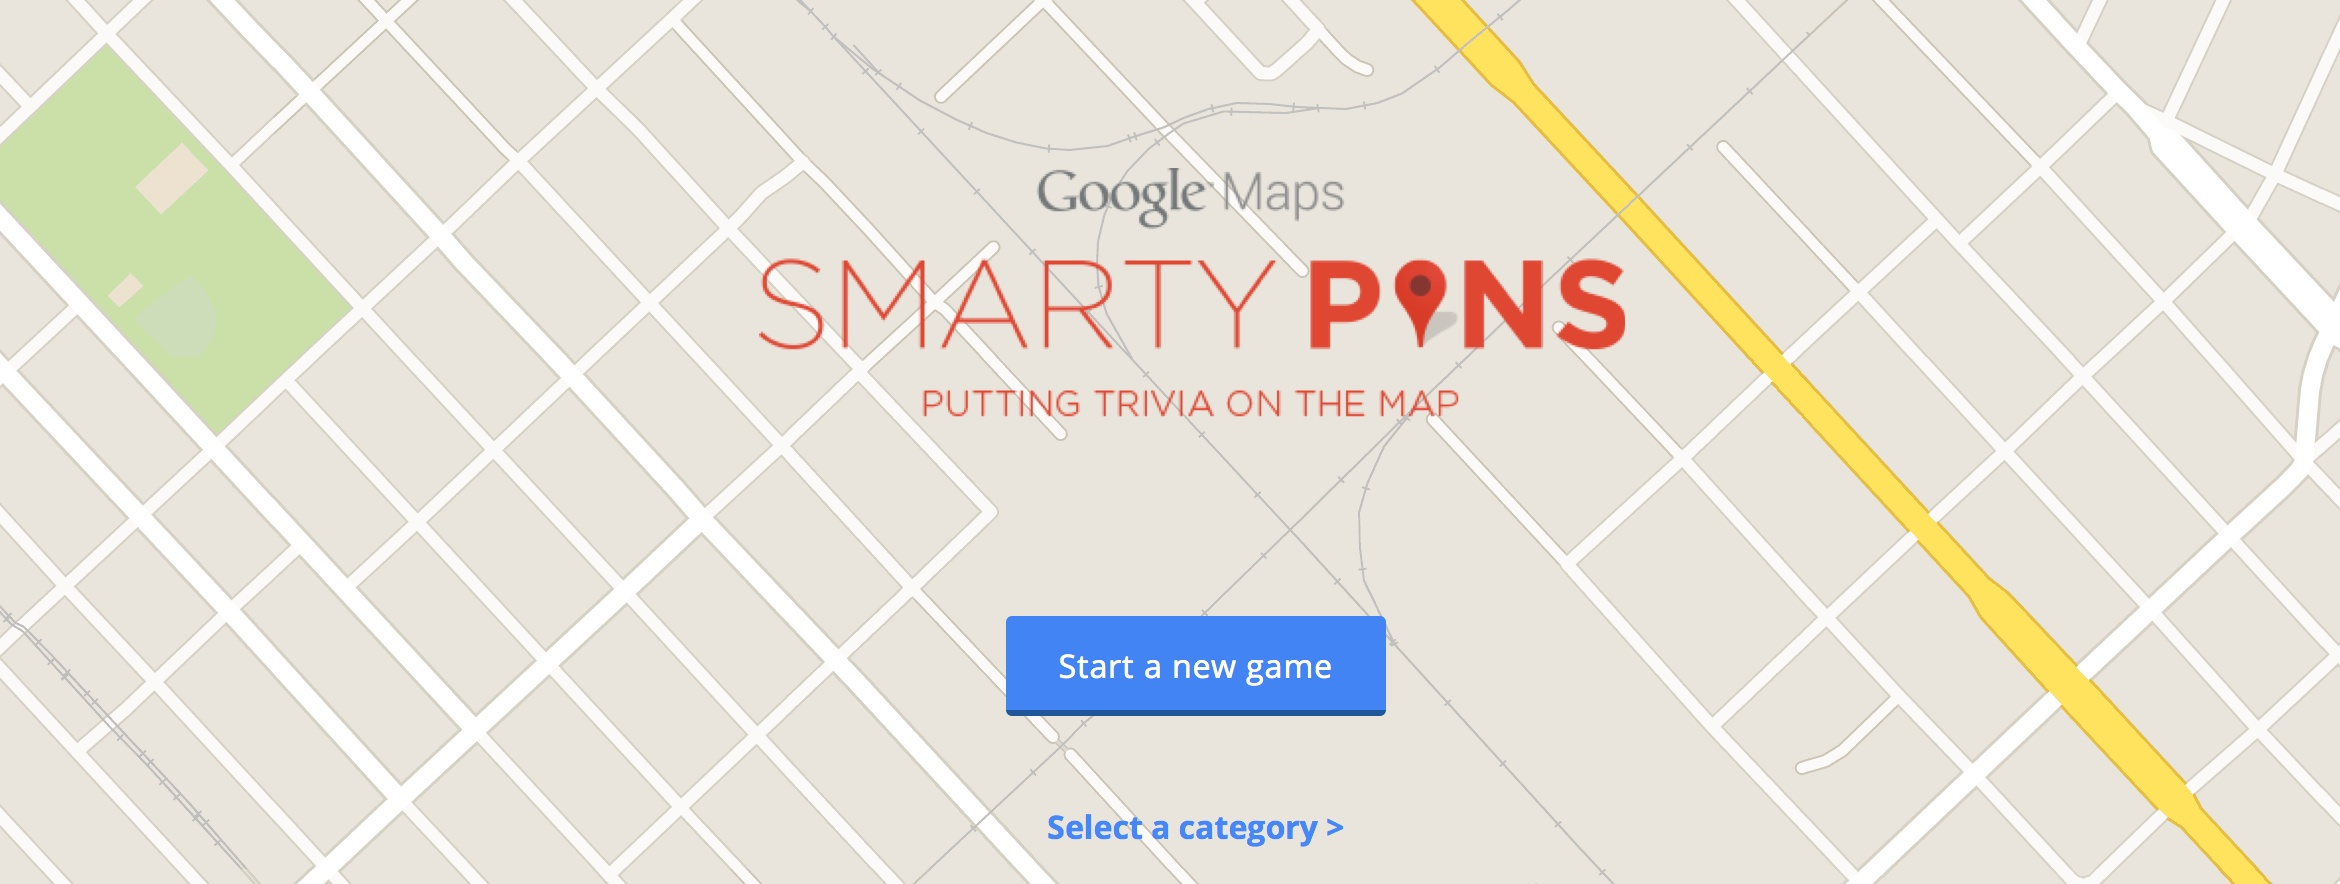 Google_Maps___Smarty_Pins